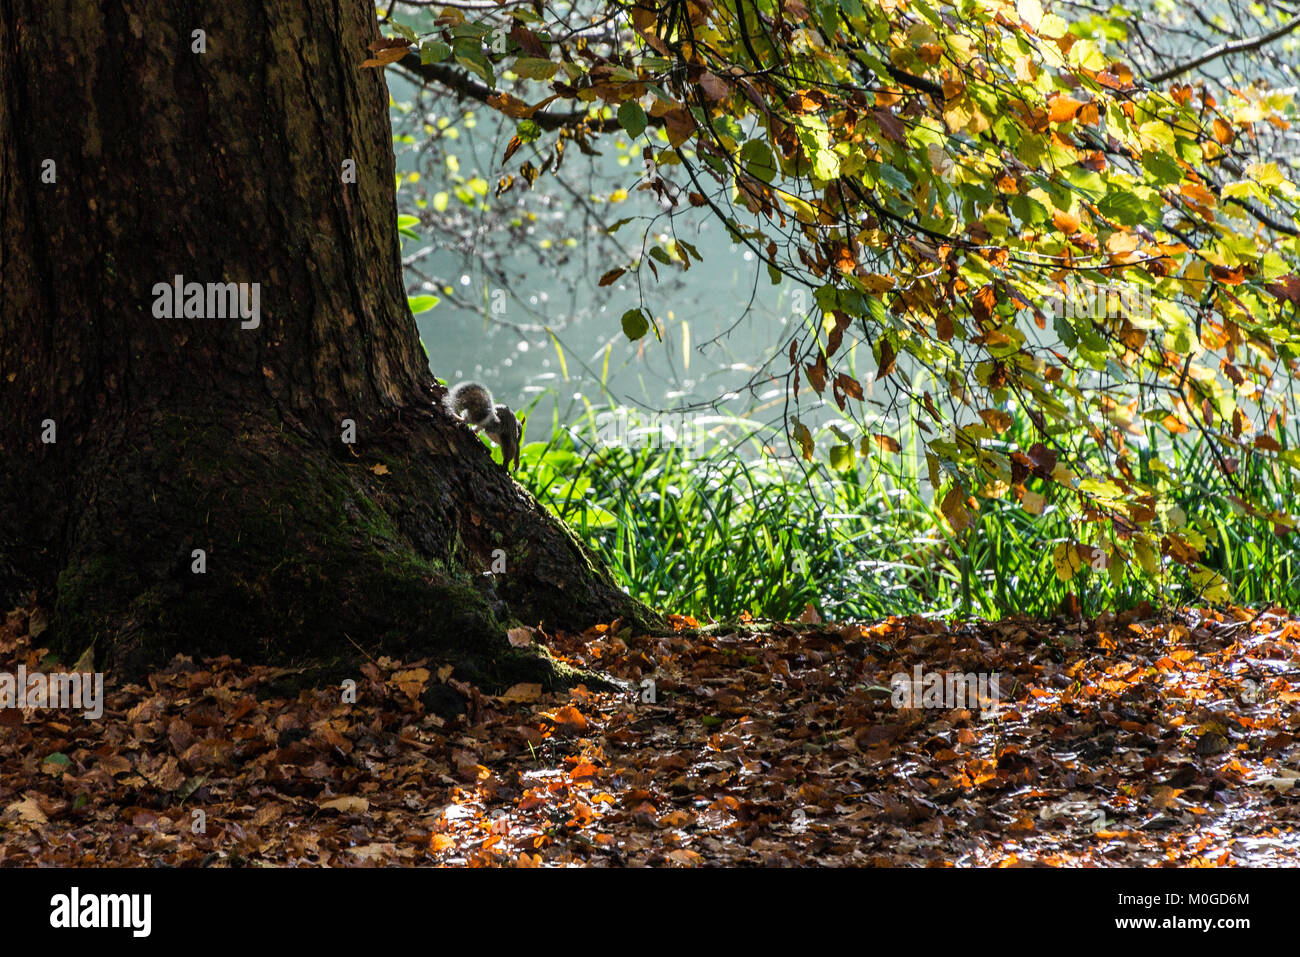 A grey squirrel (Sciurus carolinensis)scampering over the base of a tree in autumn - Stock Image